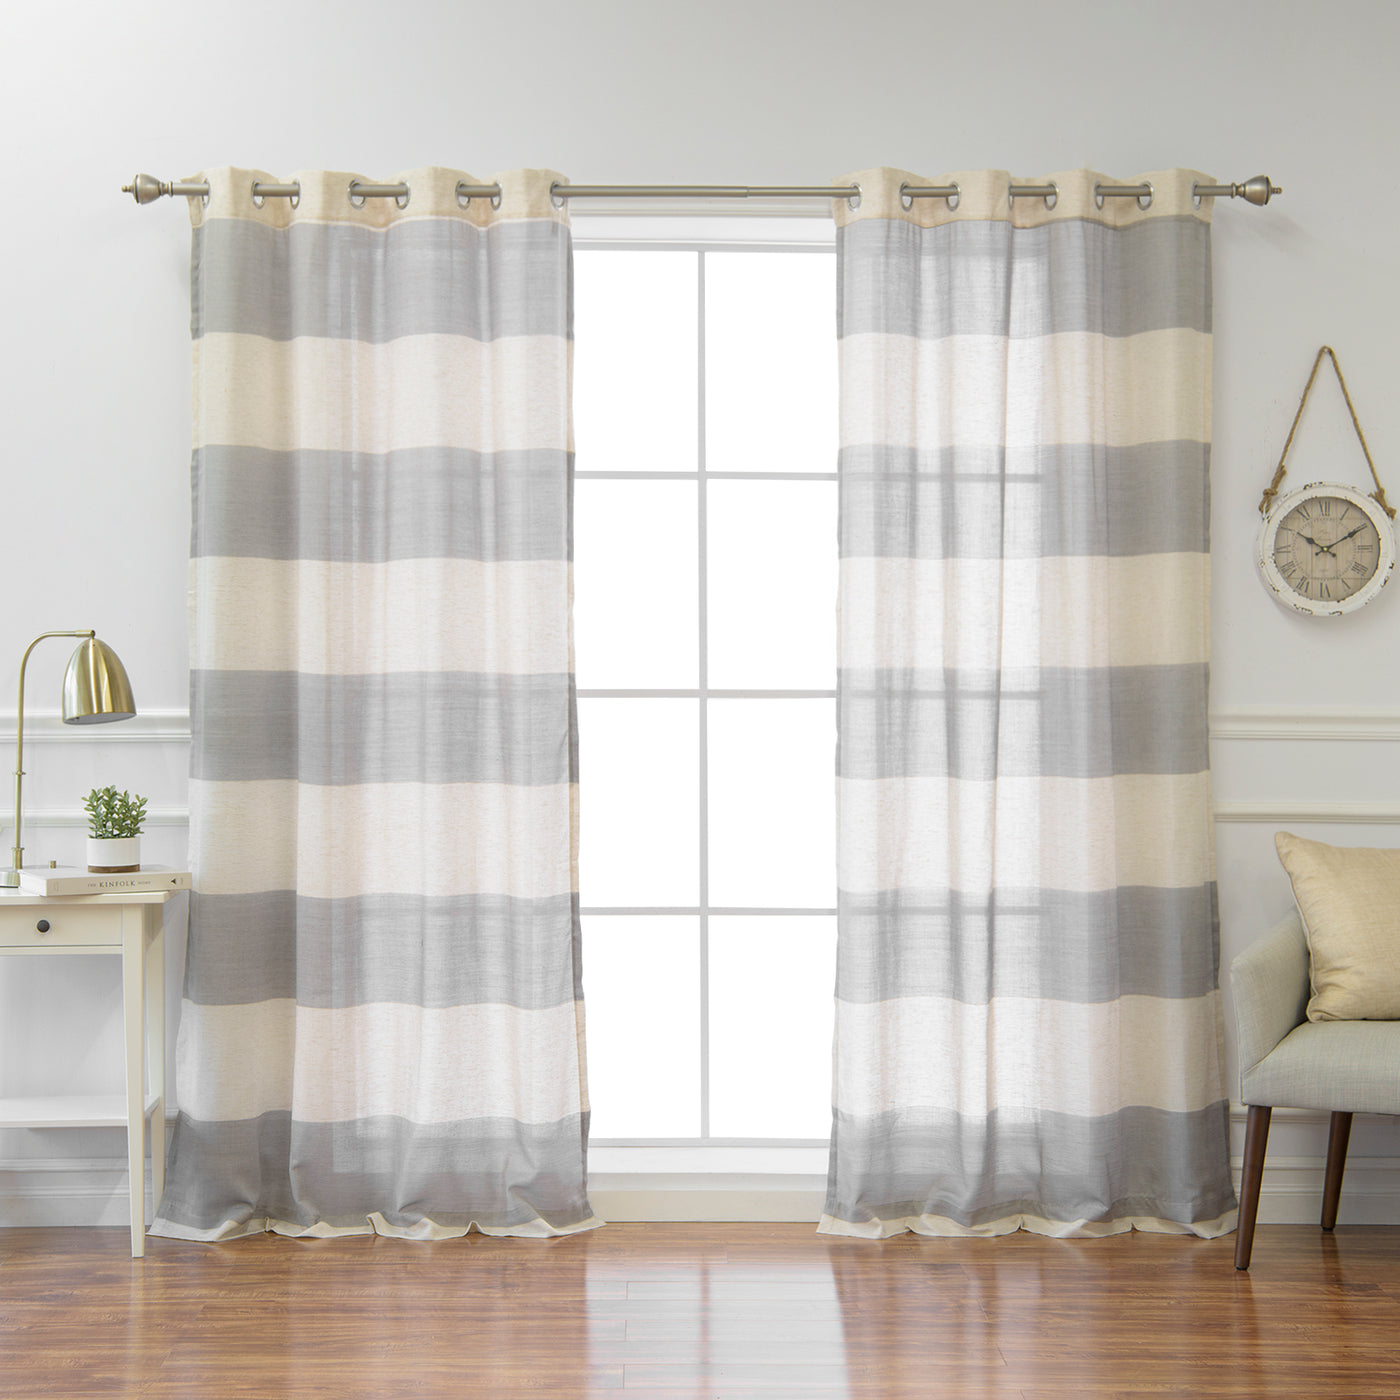 Linen Blend Rugby Stripe Curtains